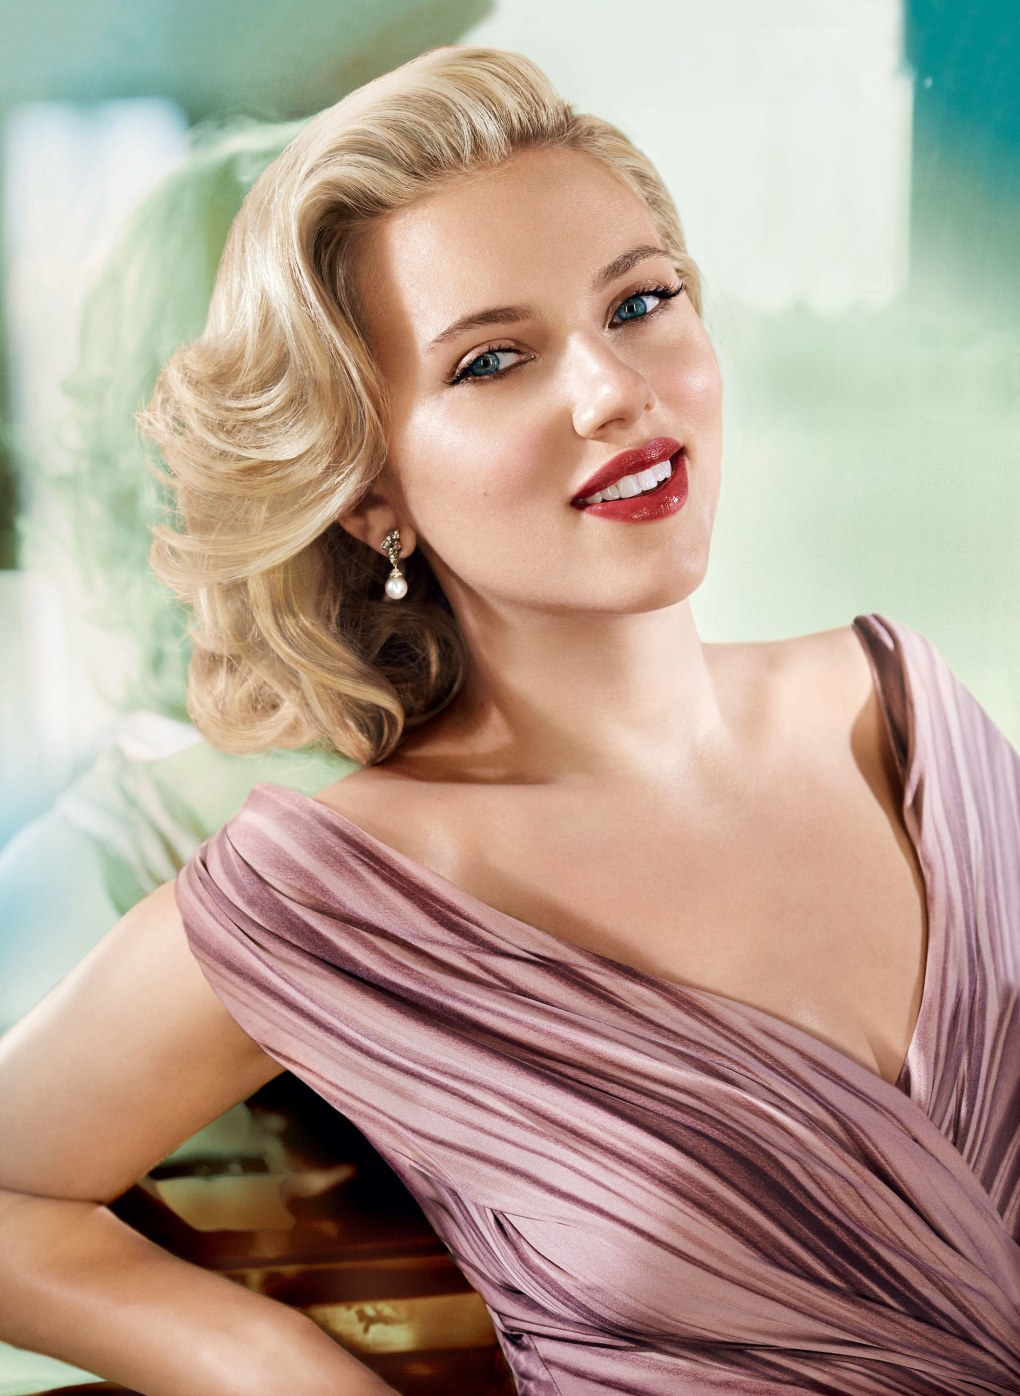 00-holding-scarlett-johansson-5-things